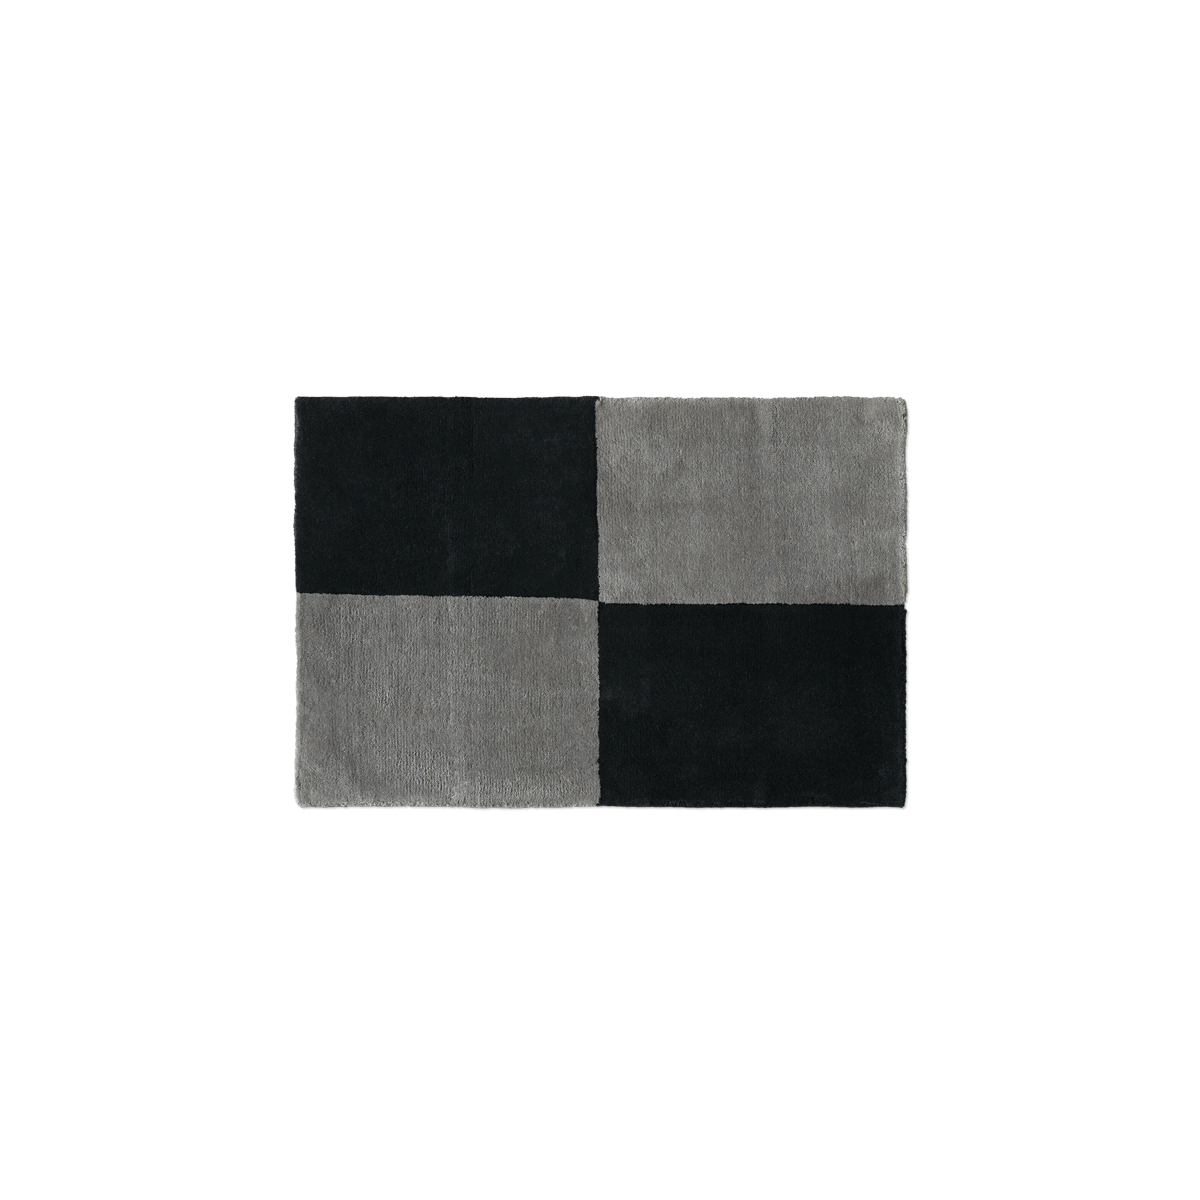 Plush doormat in the color Gray and Black. The rug is divided into four squares.